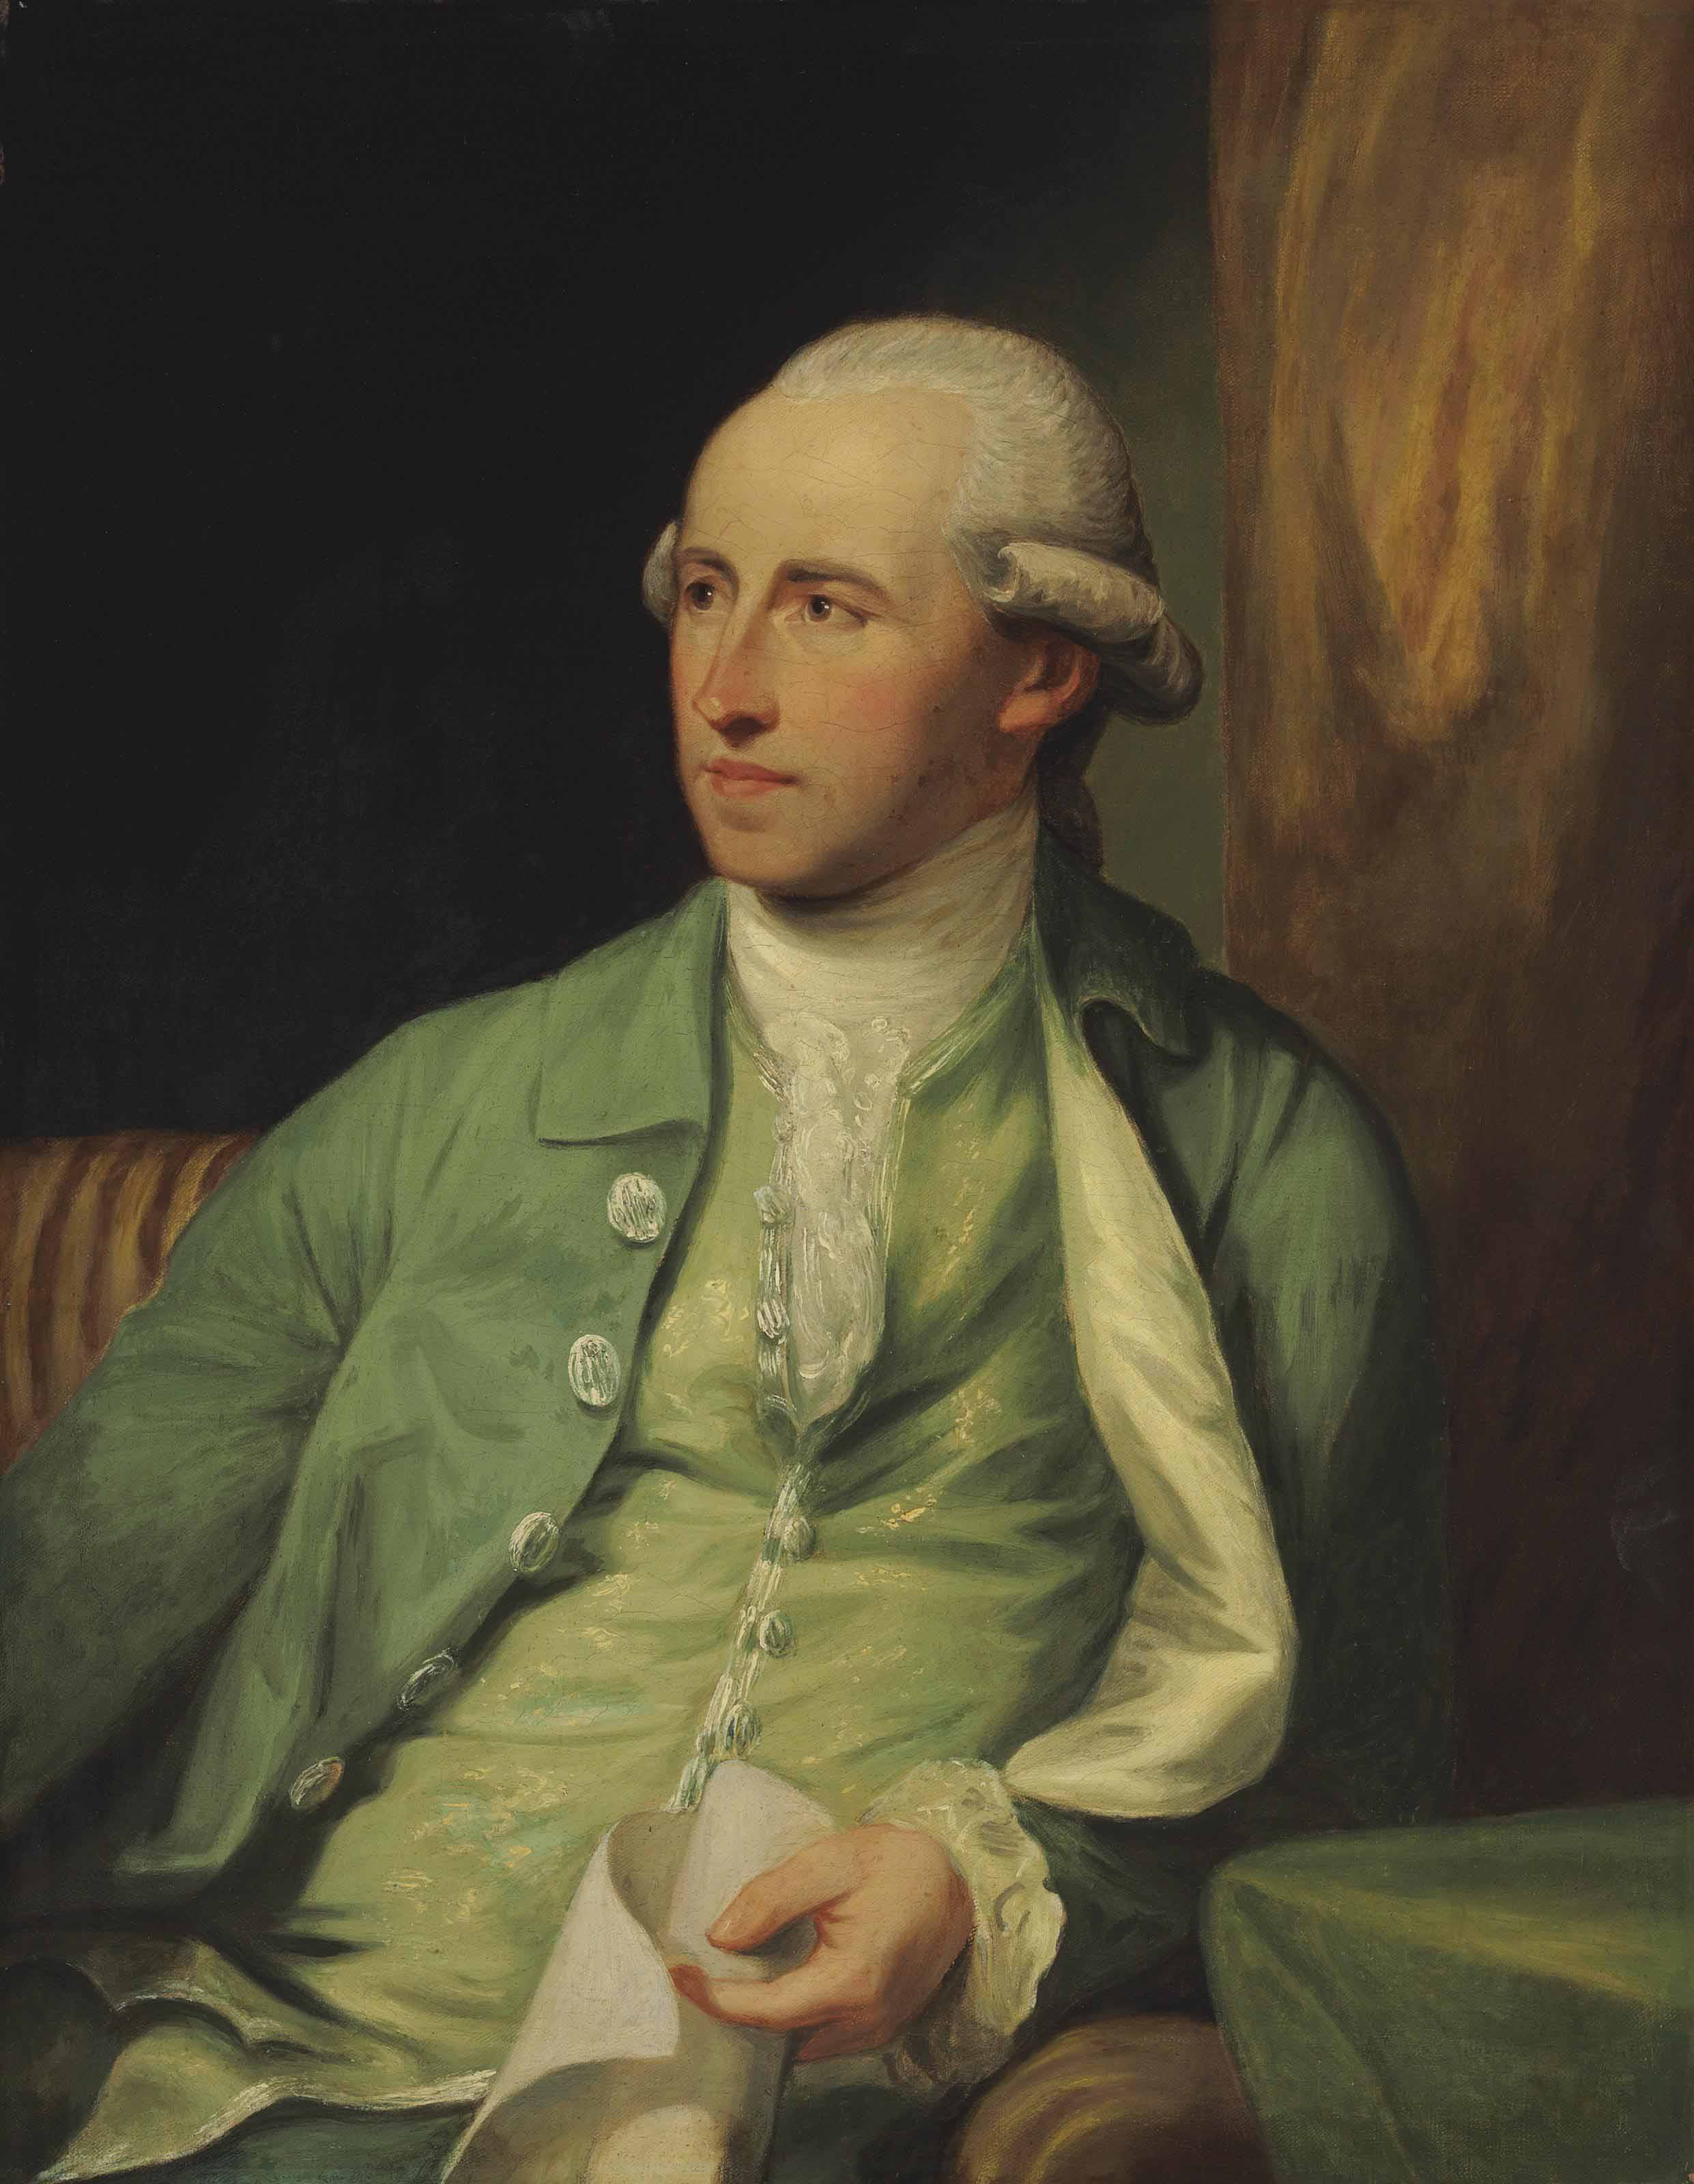 Portrait of Benjamin West, P.R.A., half-length